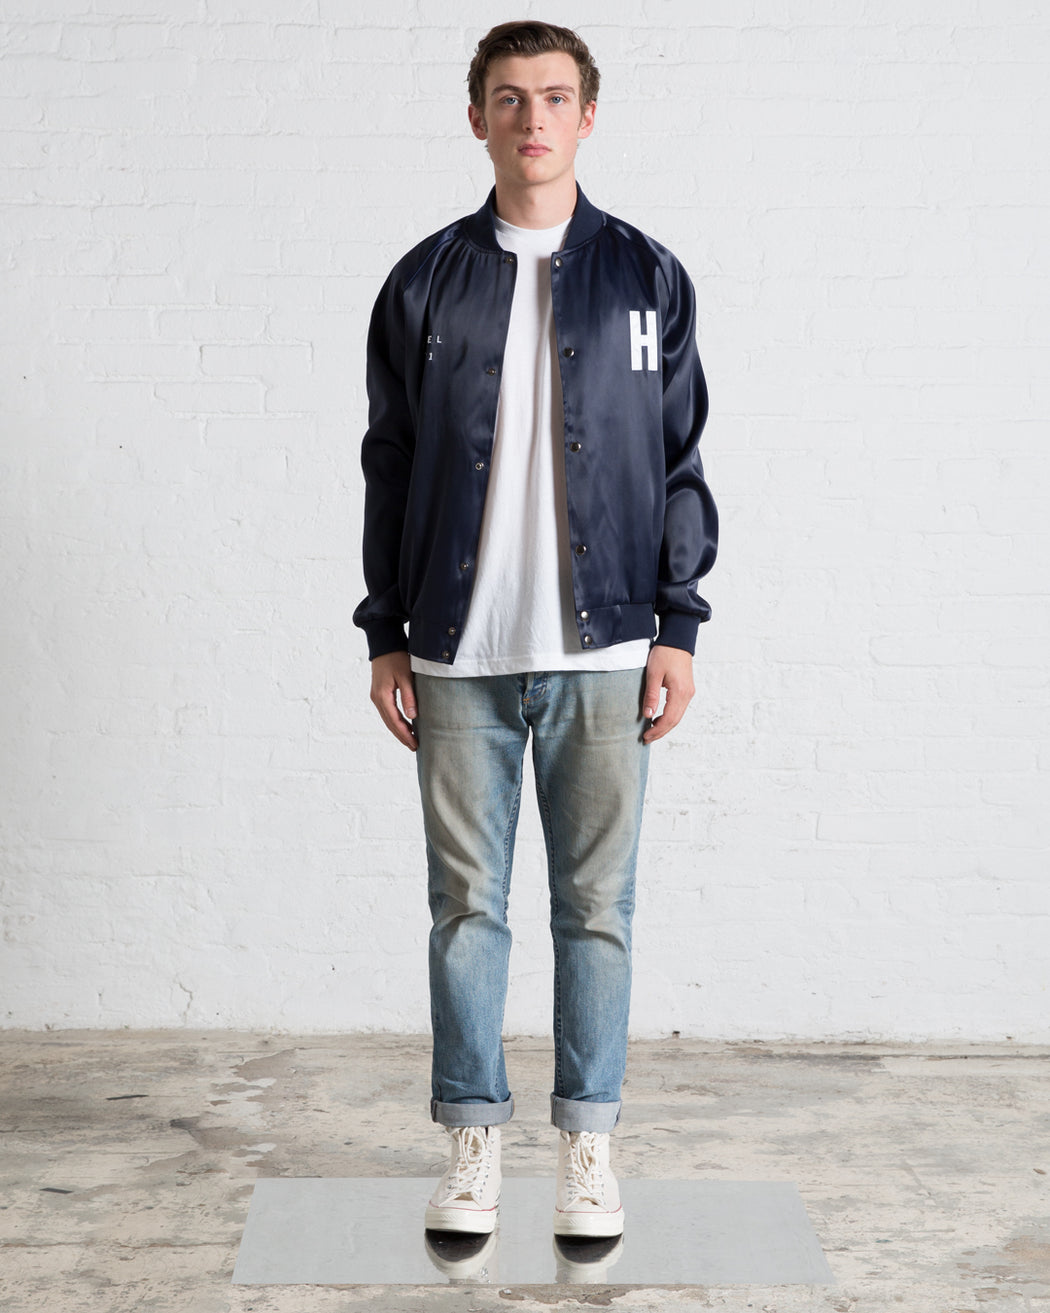 HOTEL California Classic Jacket - Navy